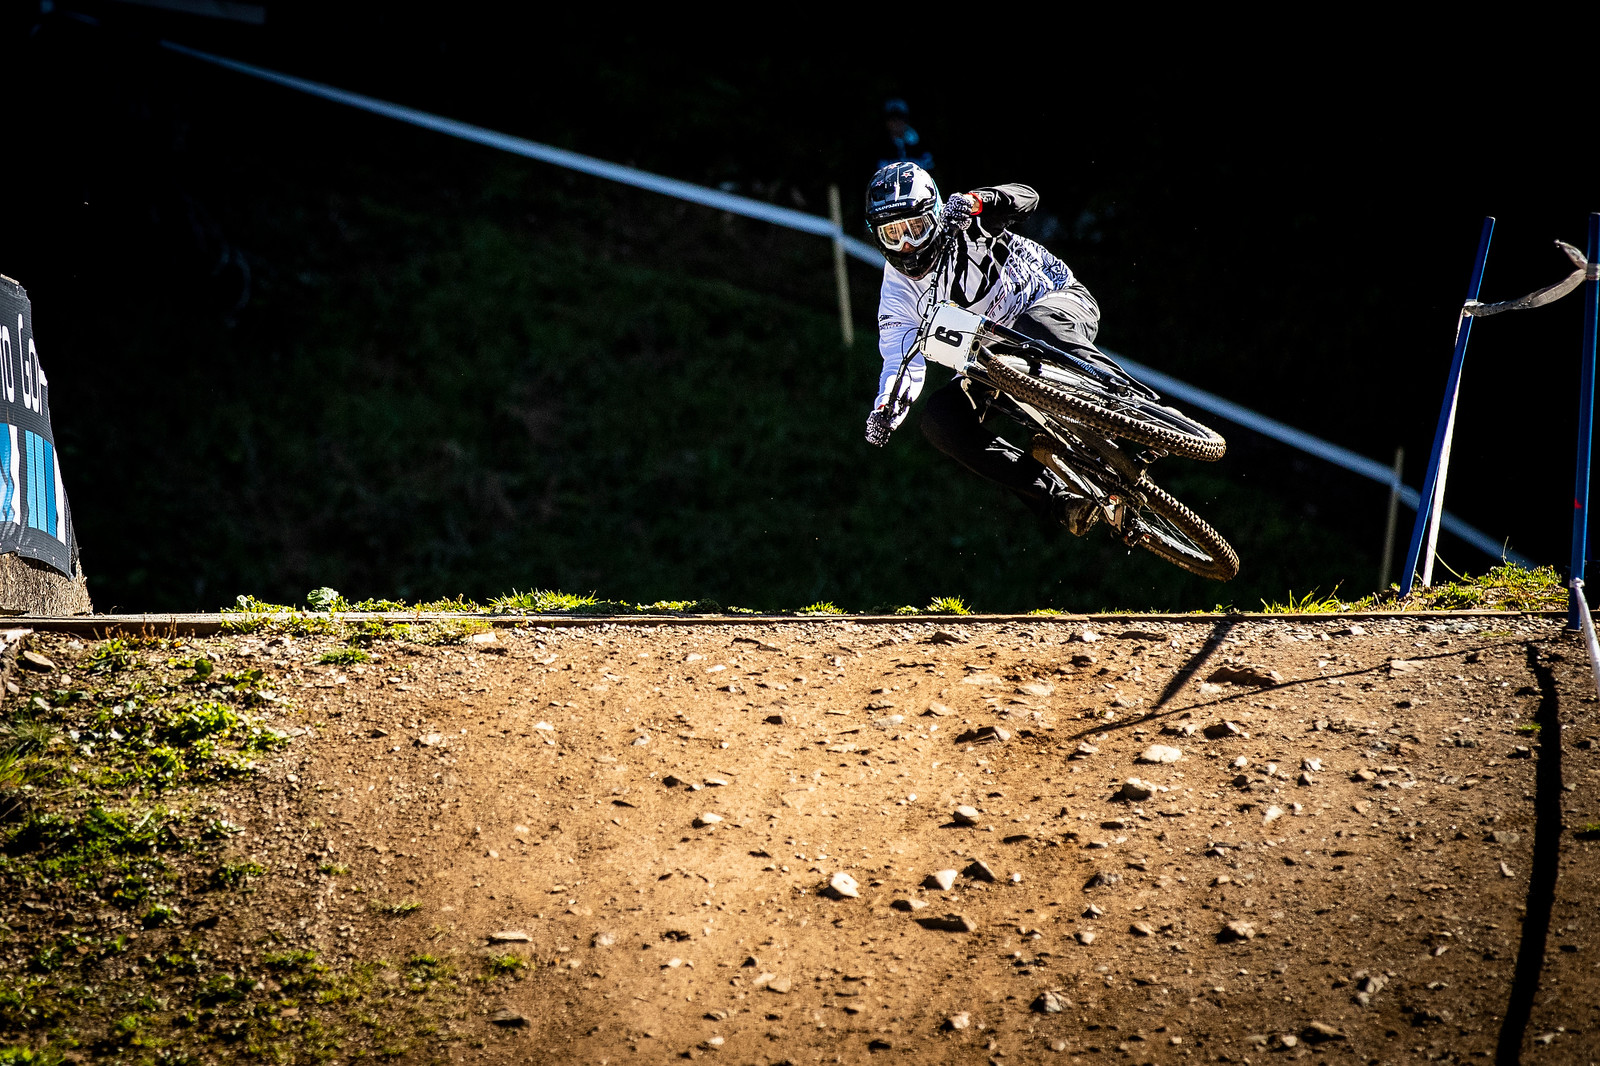 Blenki - WORLD CHAMPS WHIPFEST - Mountain Biking Pictures - Vital MTB